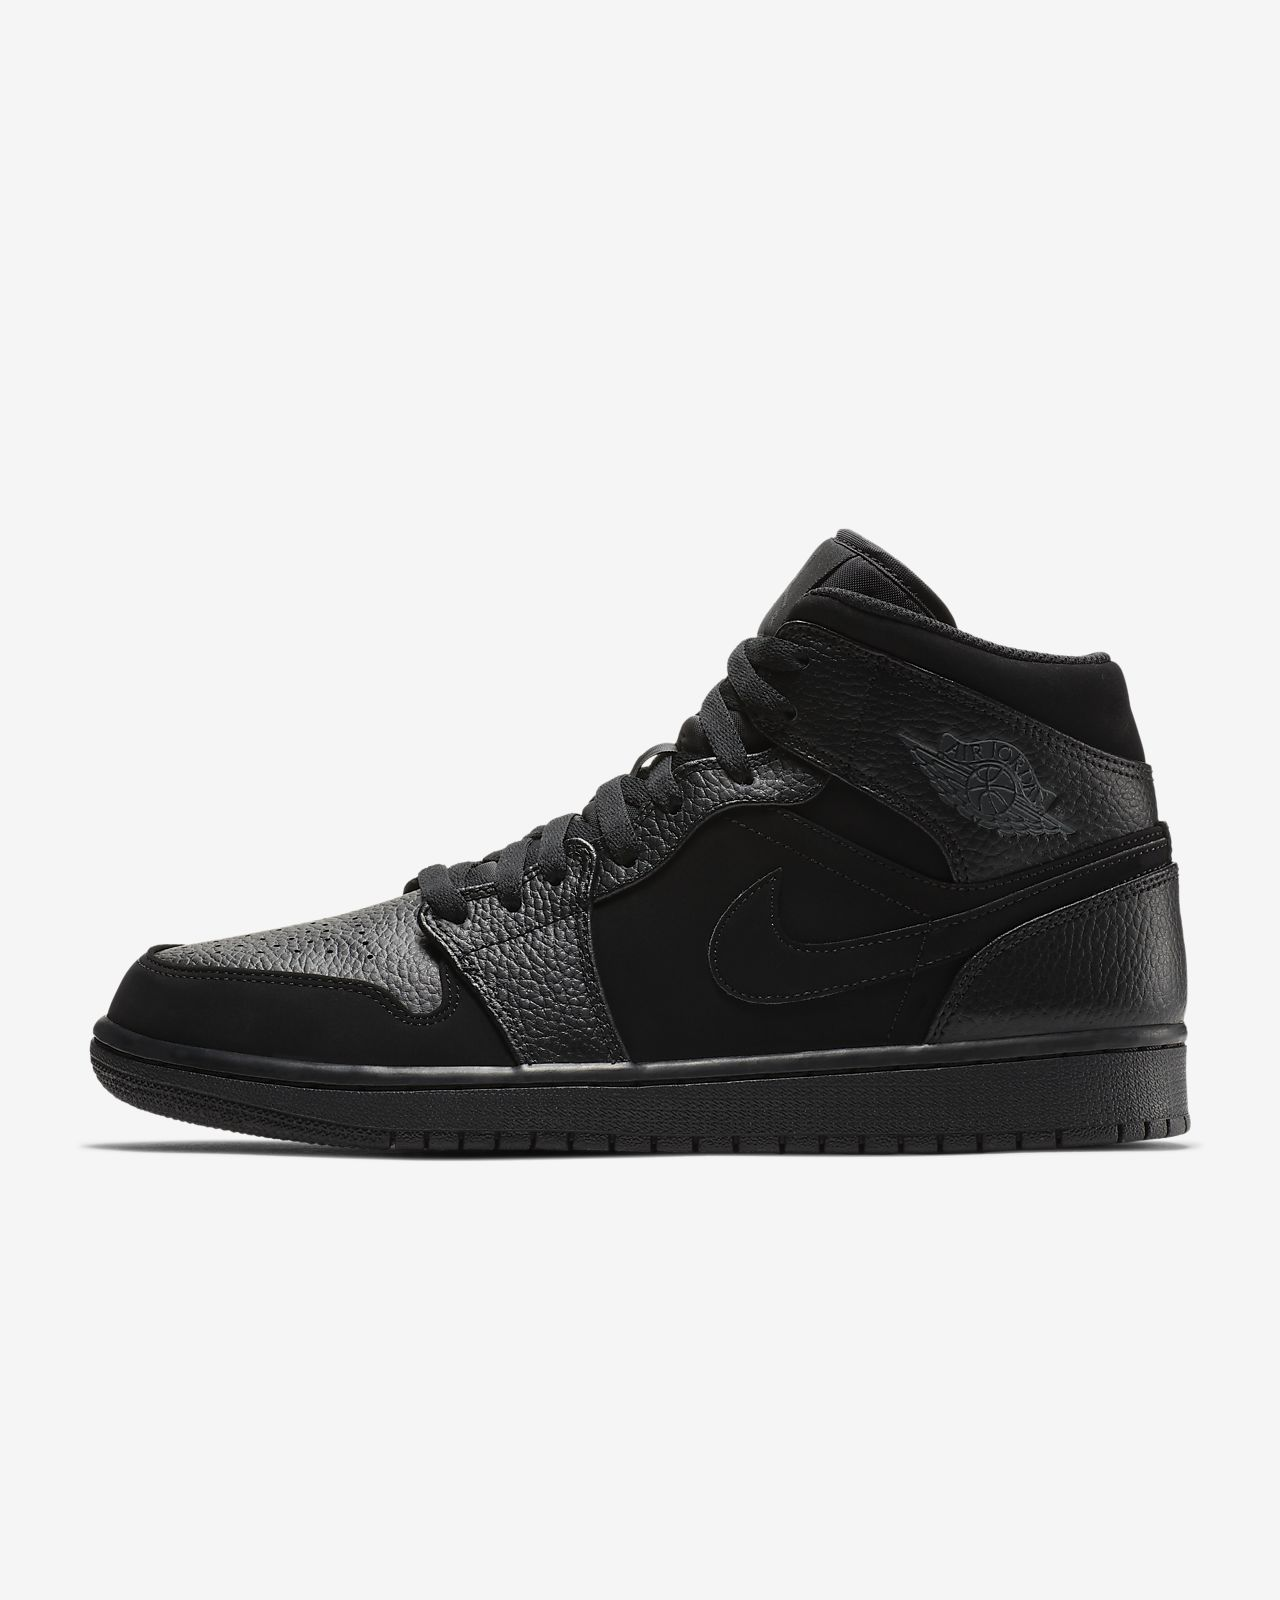 42cf61a45808 Air Jordan 1 Mid Men s Shoe. Nike.com NL